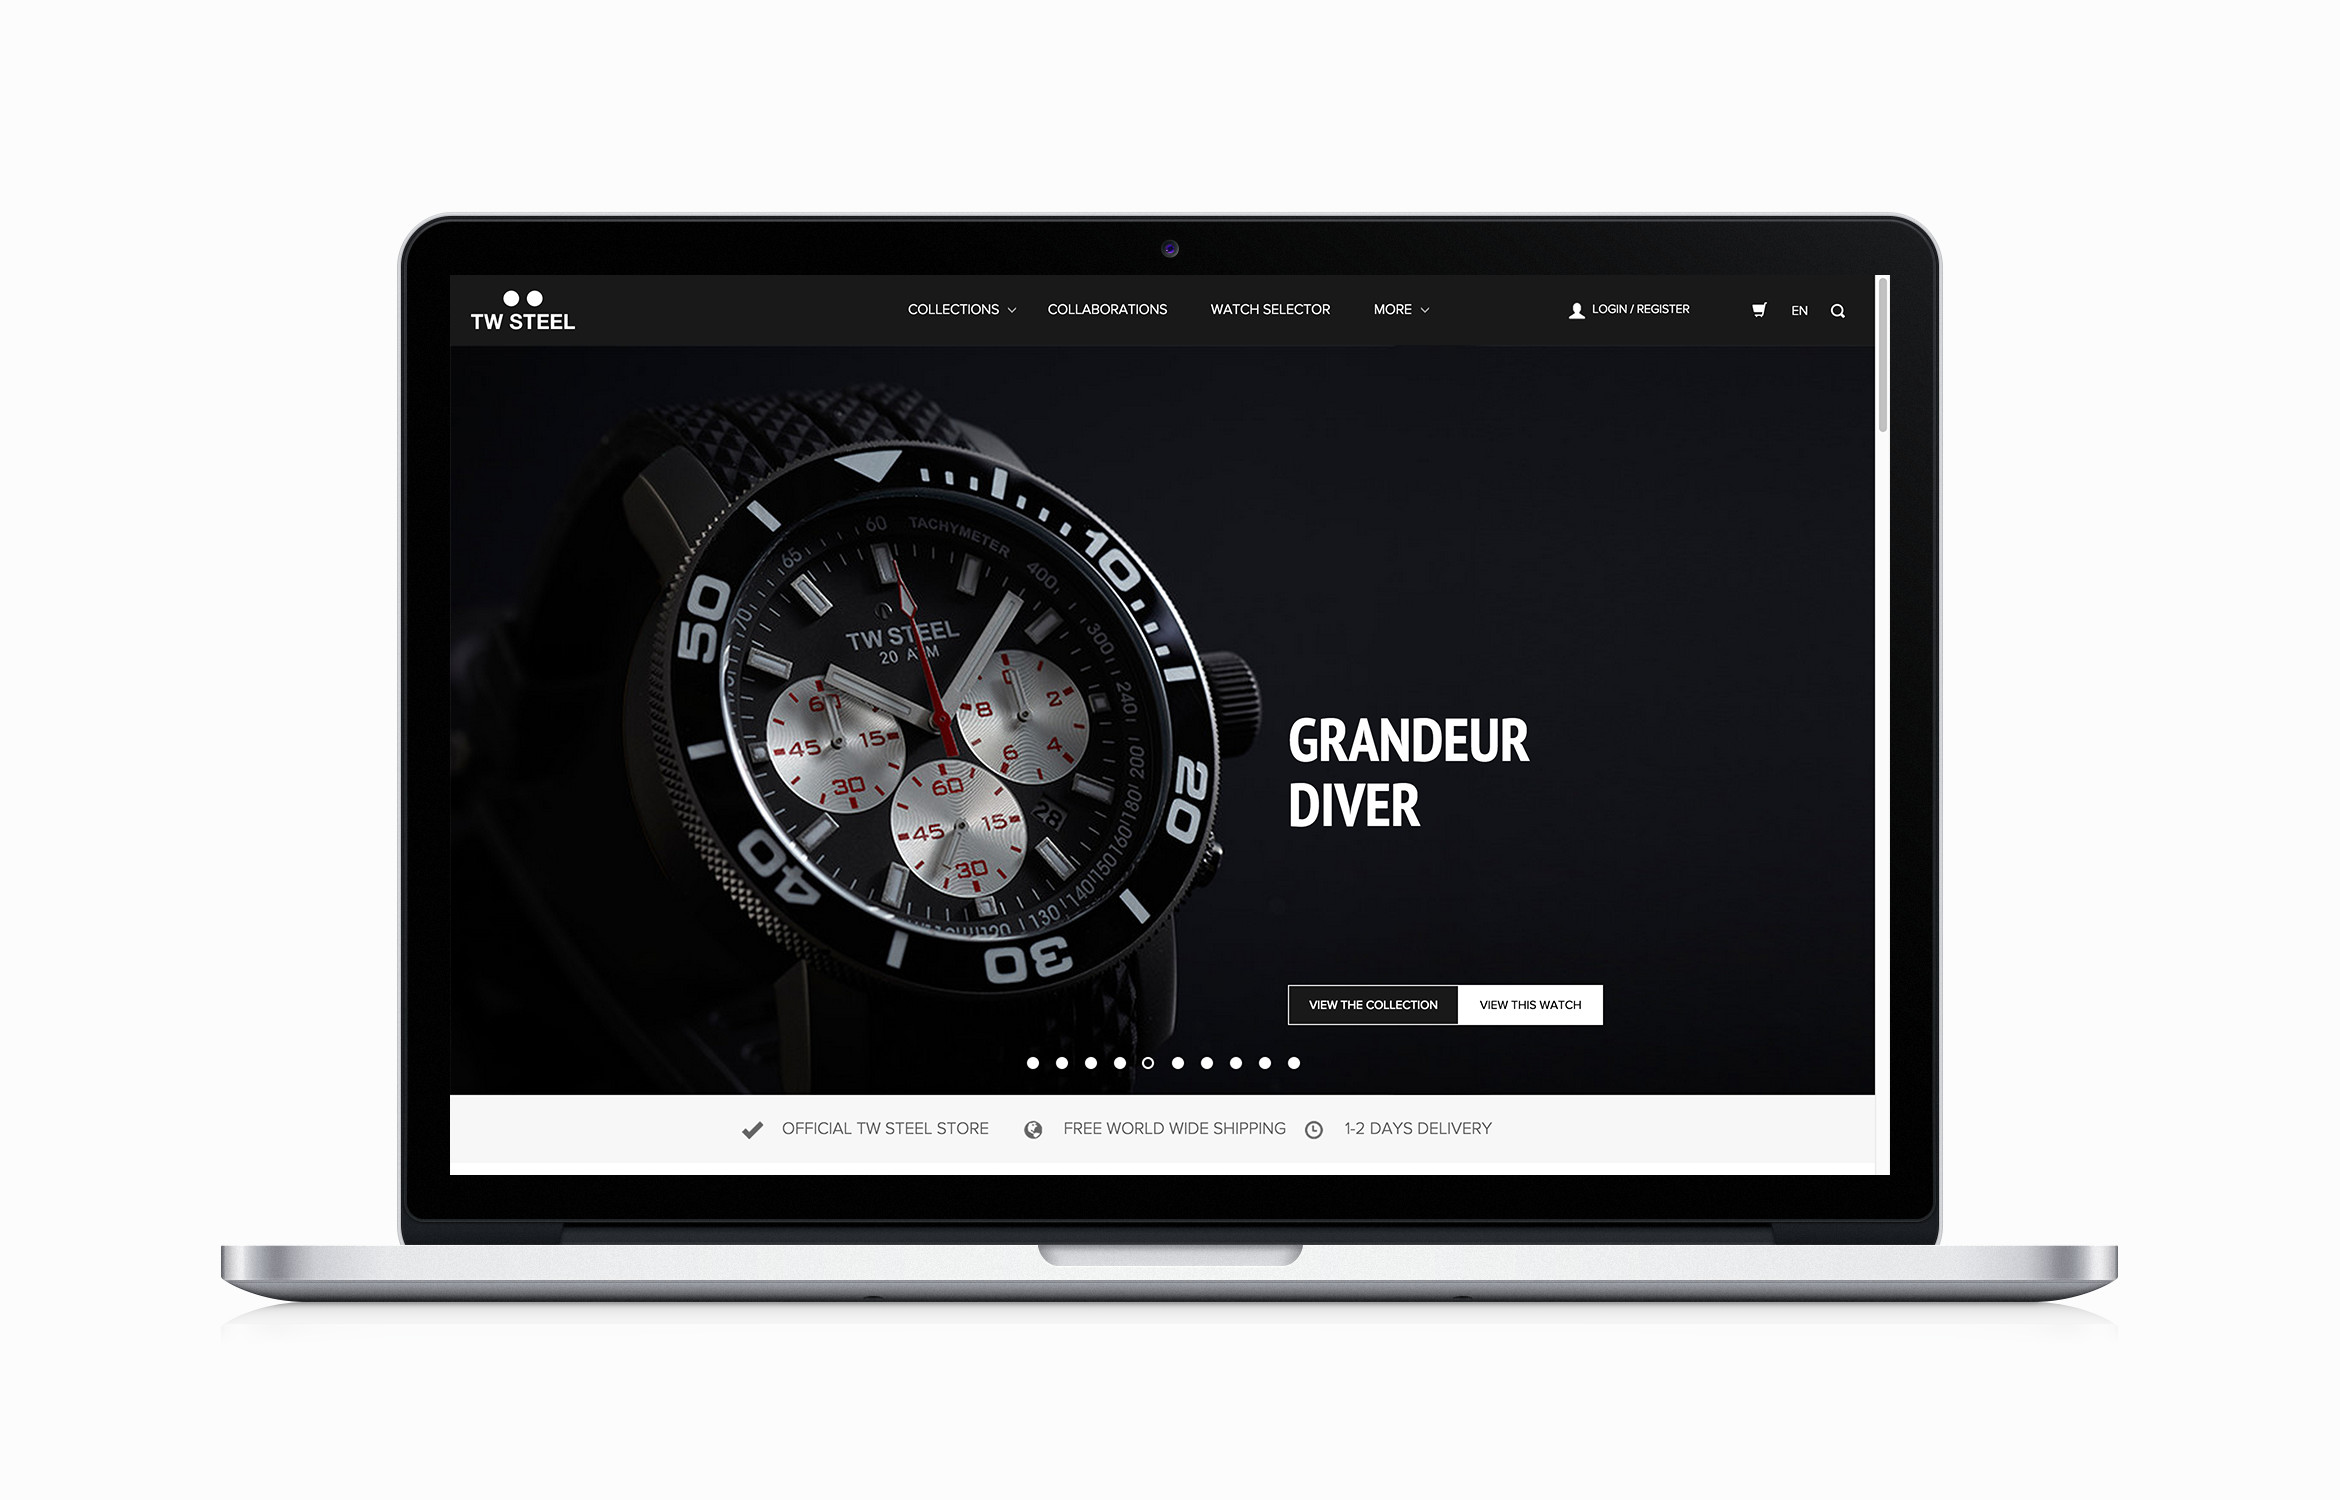 macbook_twsteel_website